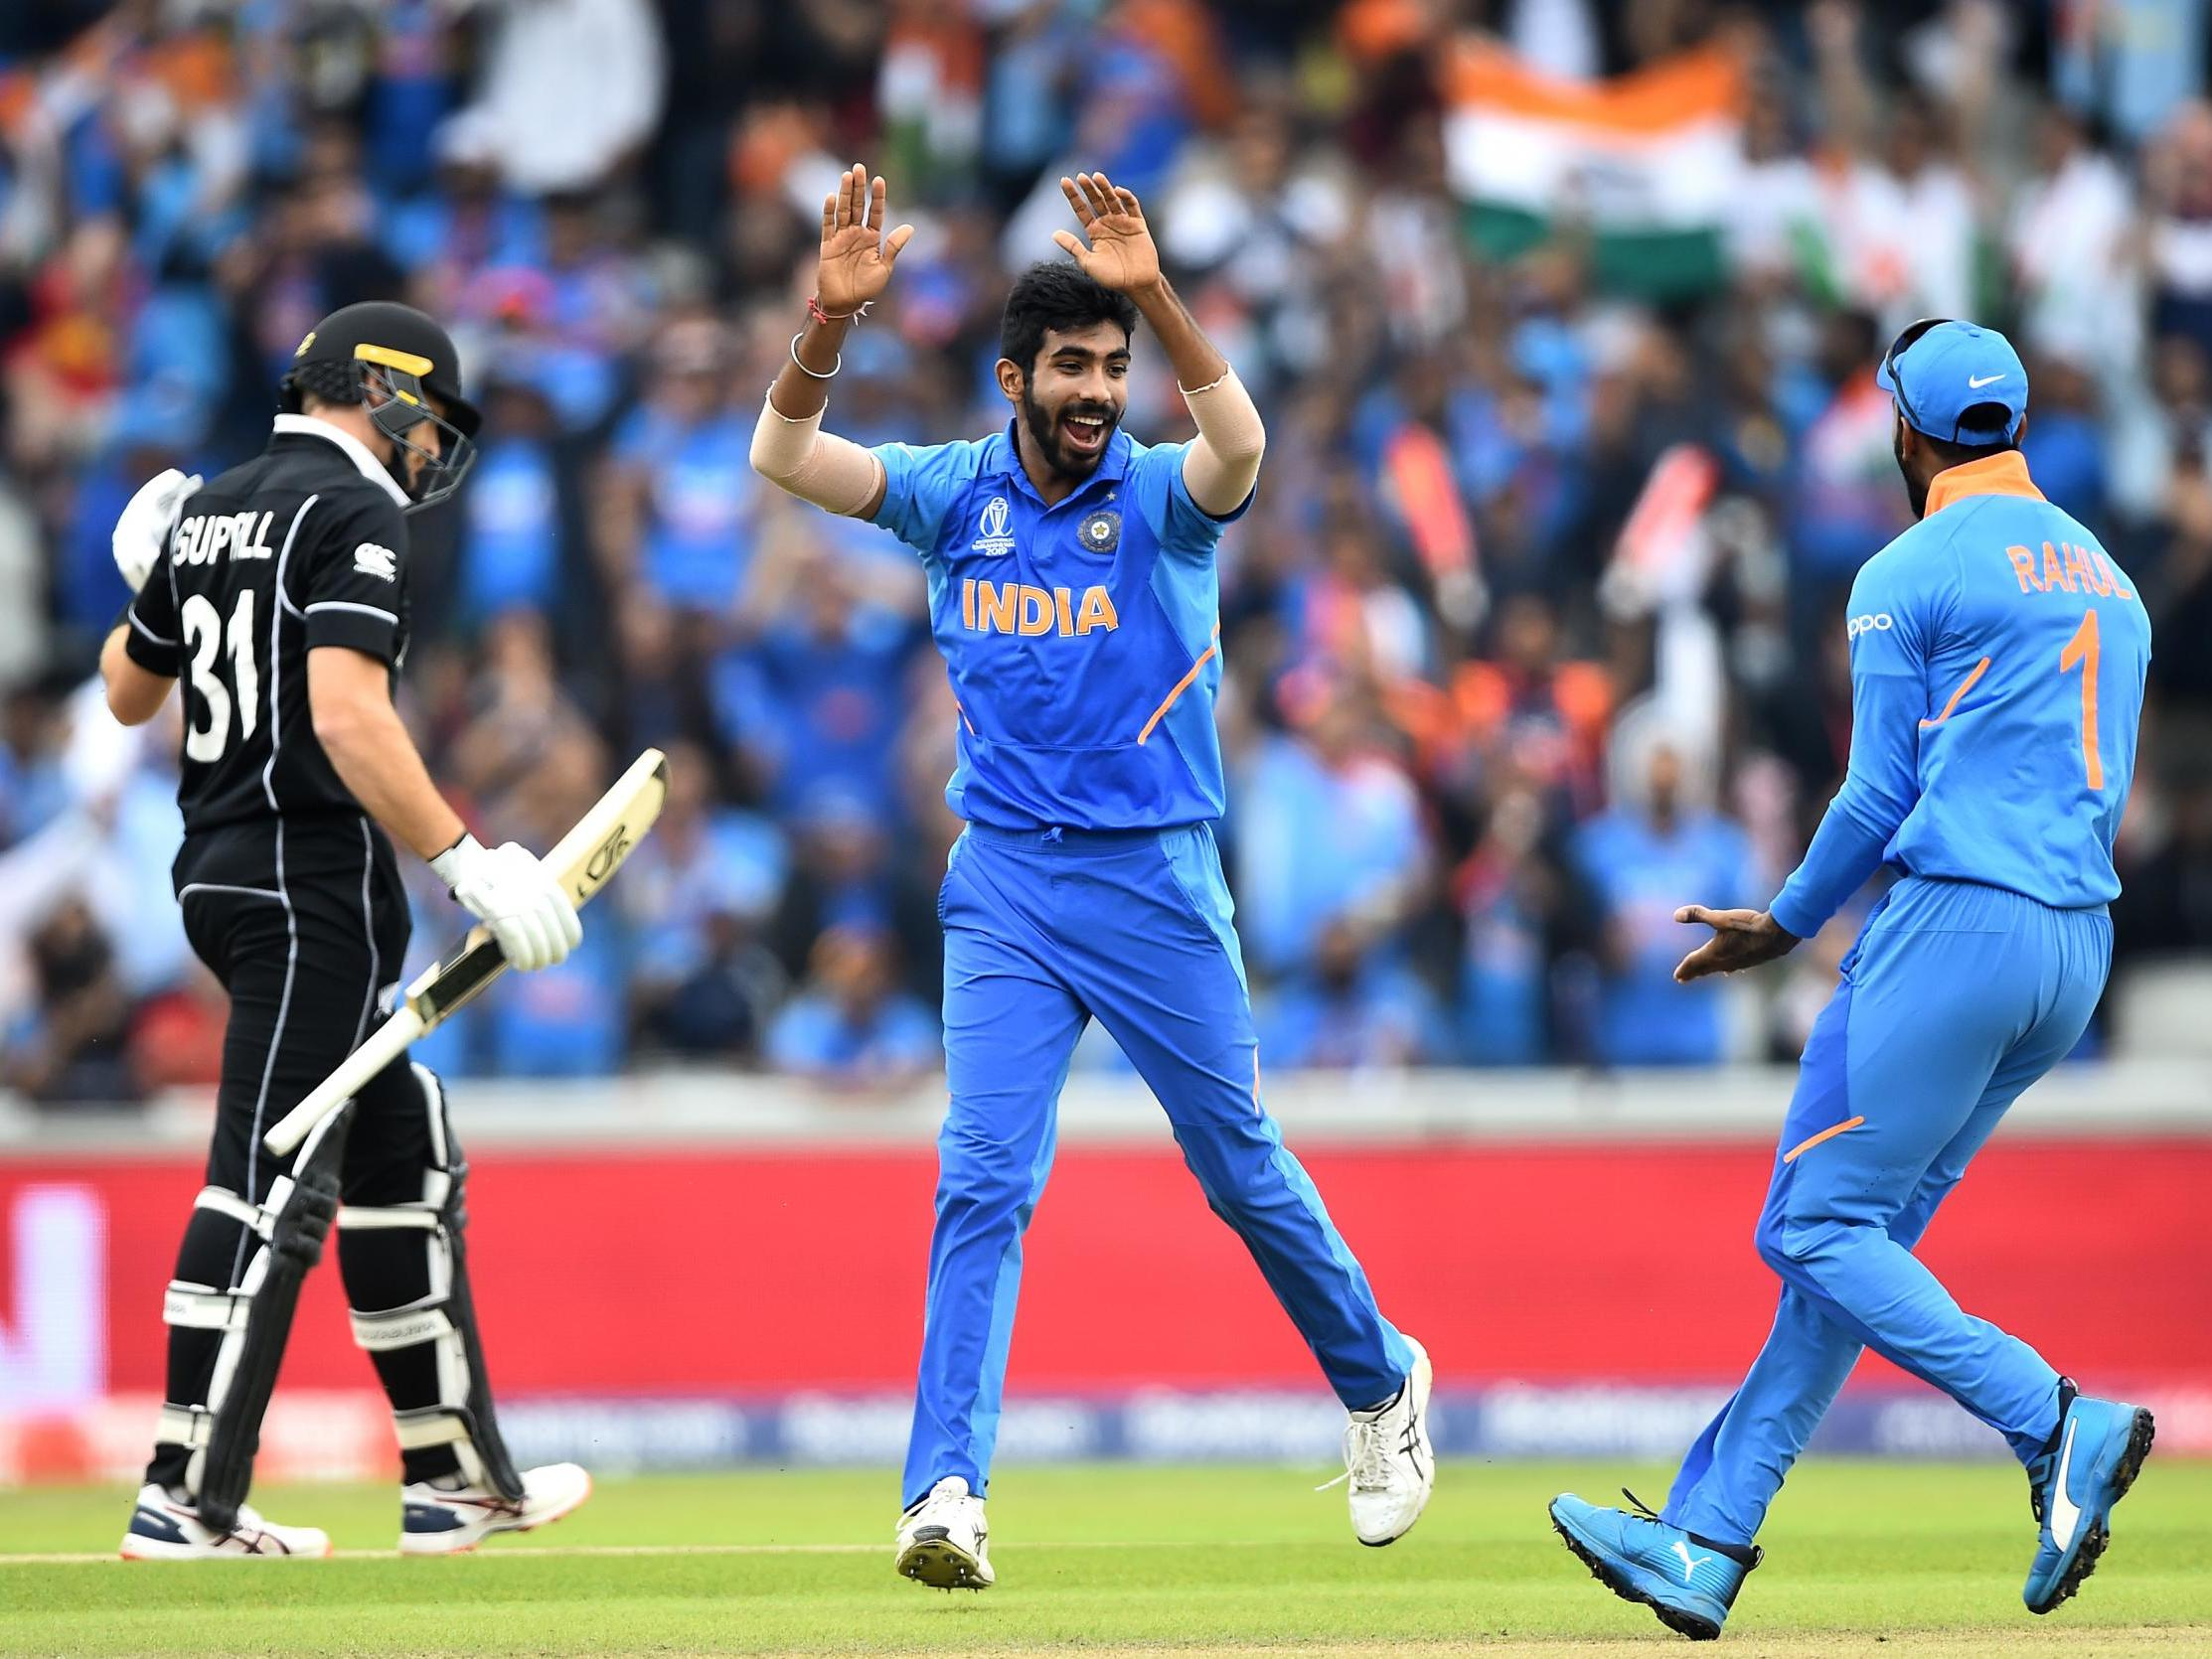 India vs New Zealand LIVE Cricket World Cup 2019: Latest